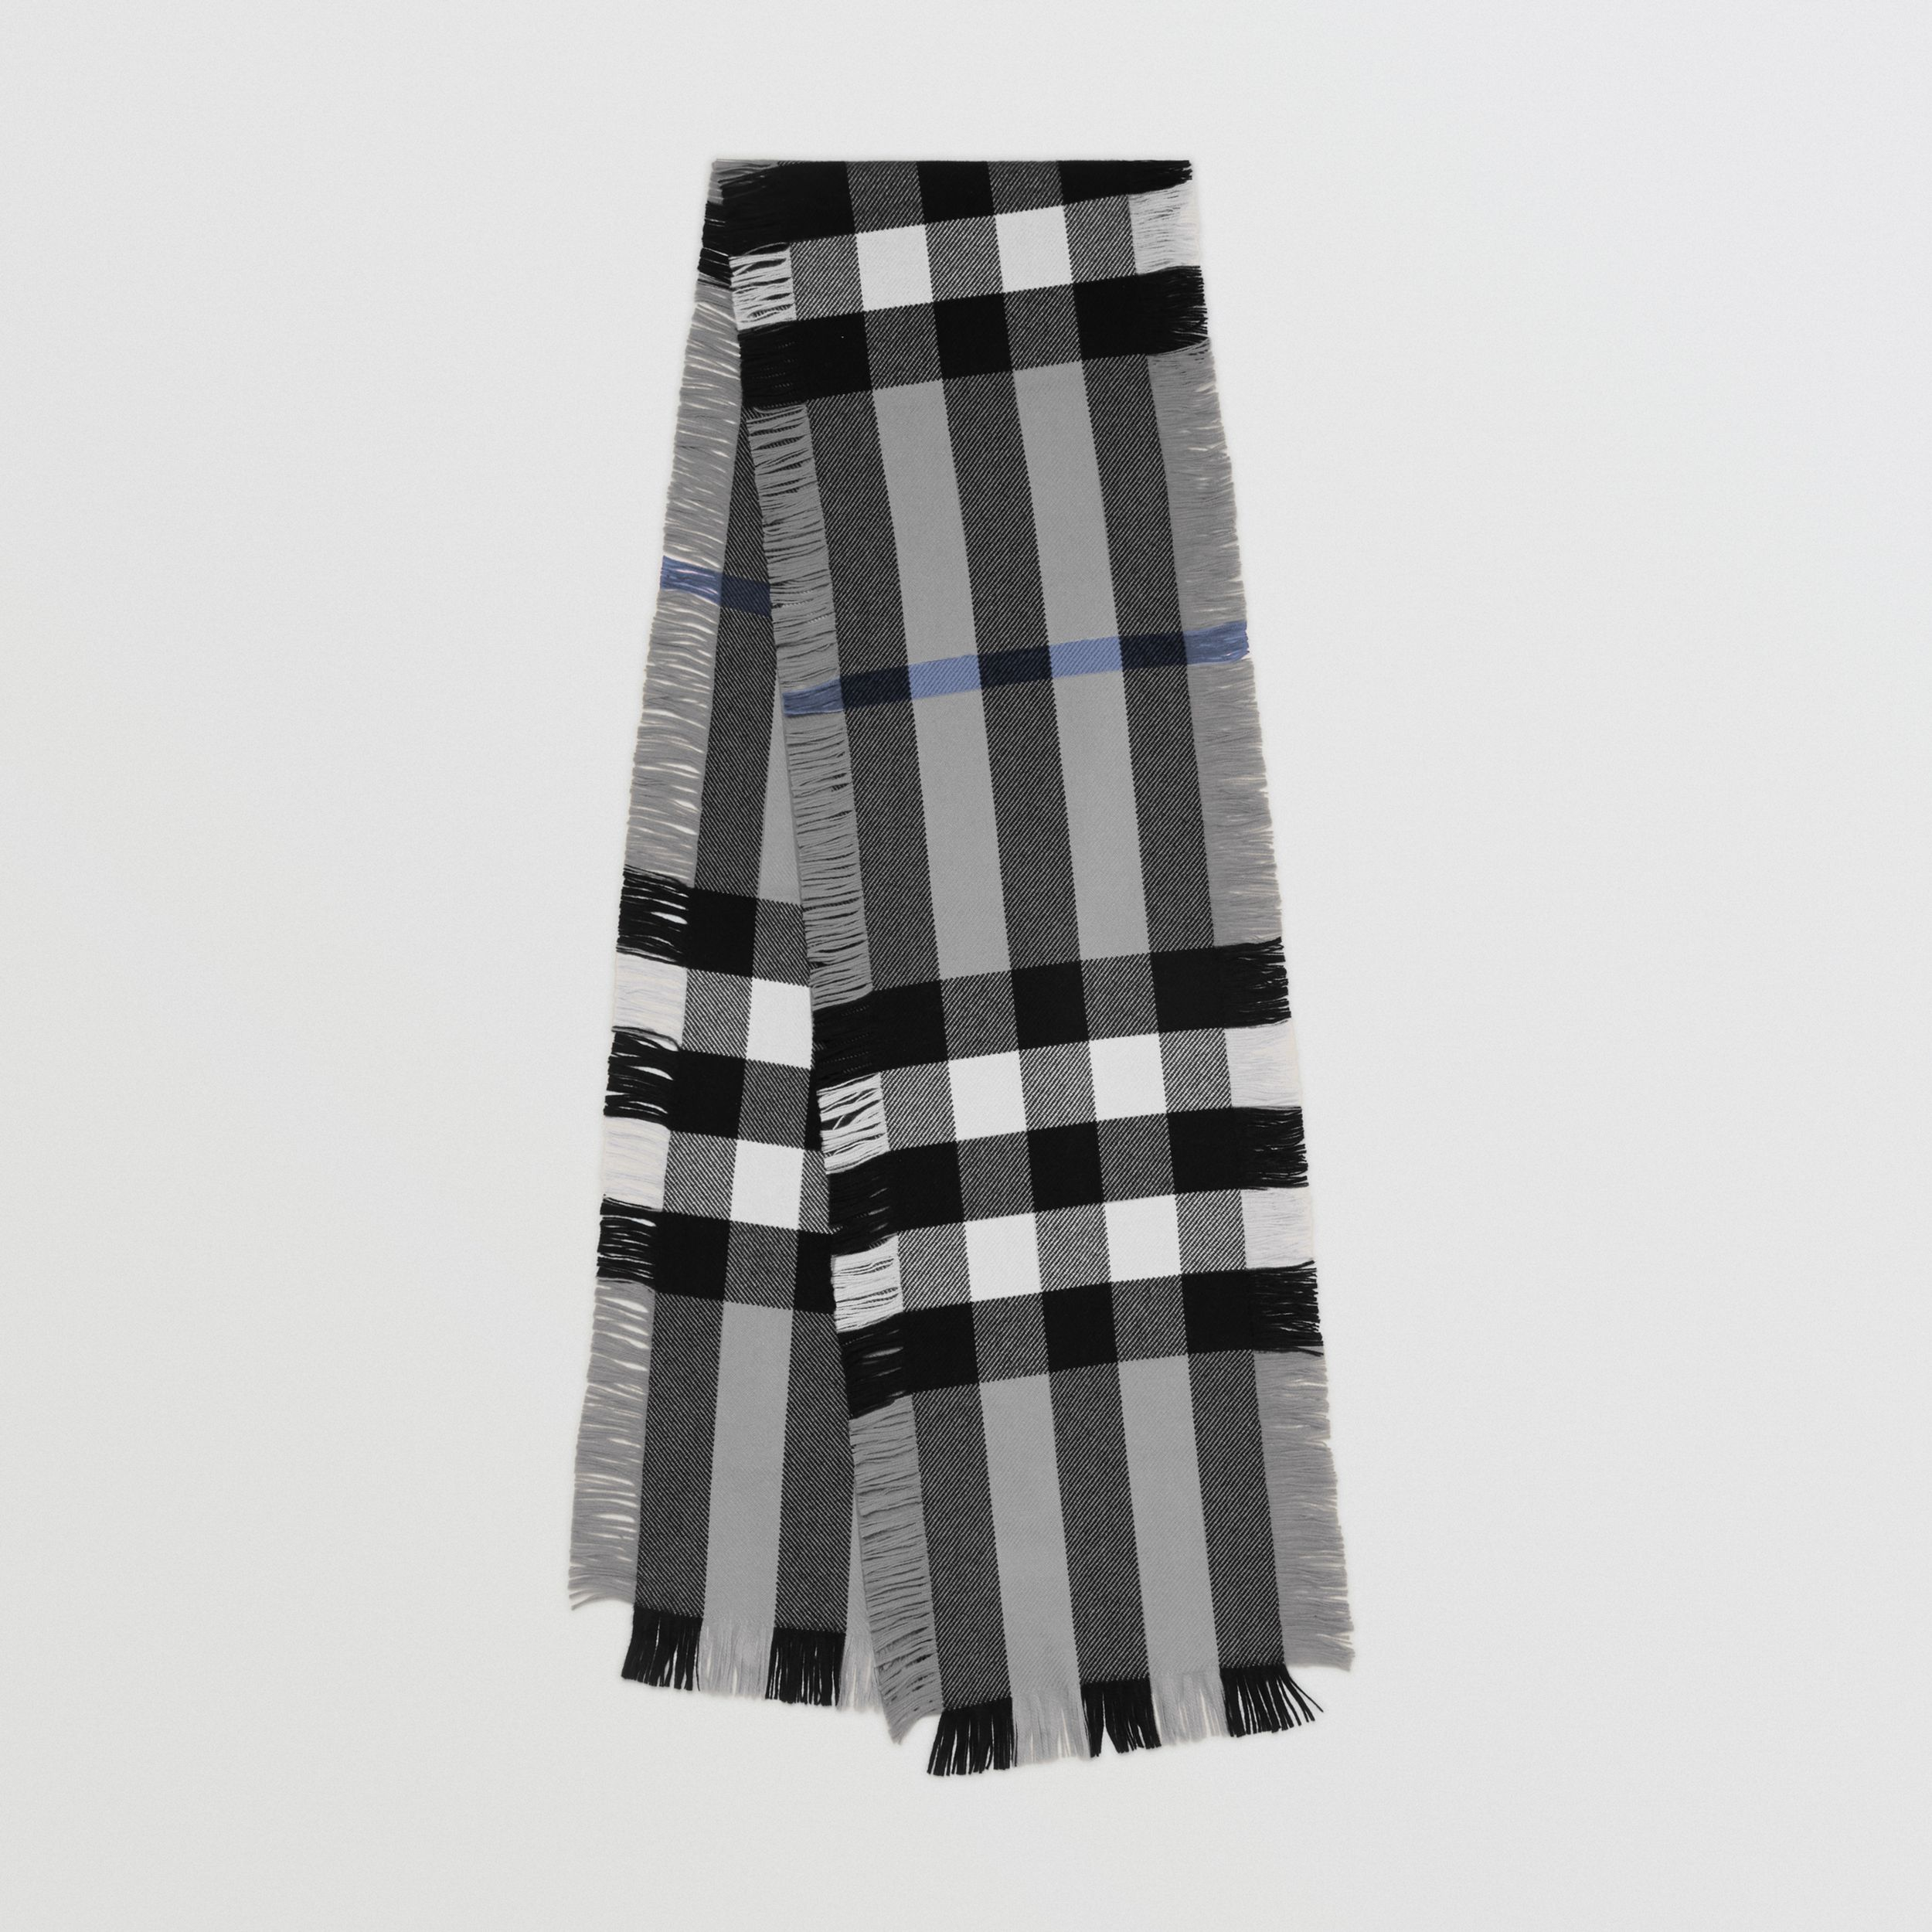 Fringed Check Wool Scarf in Mid Grey | Burberry - 1